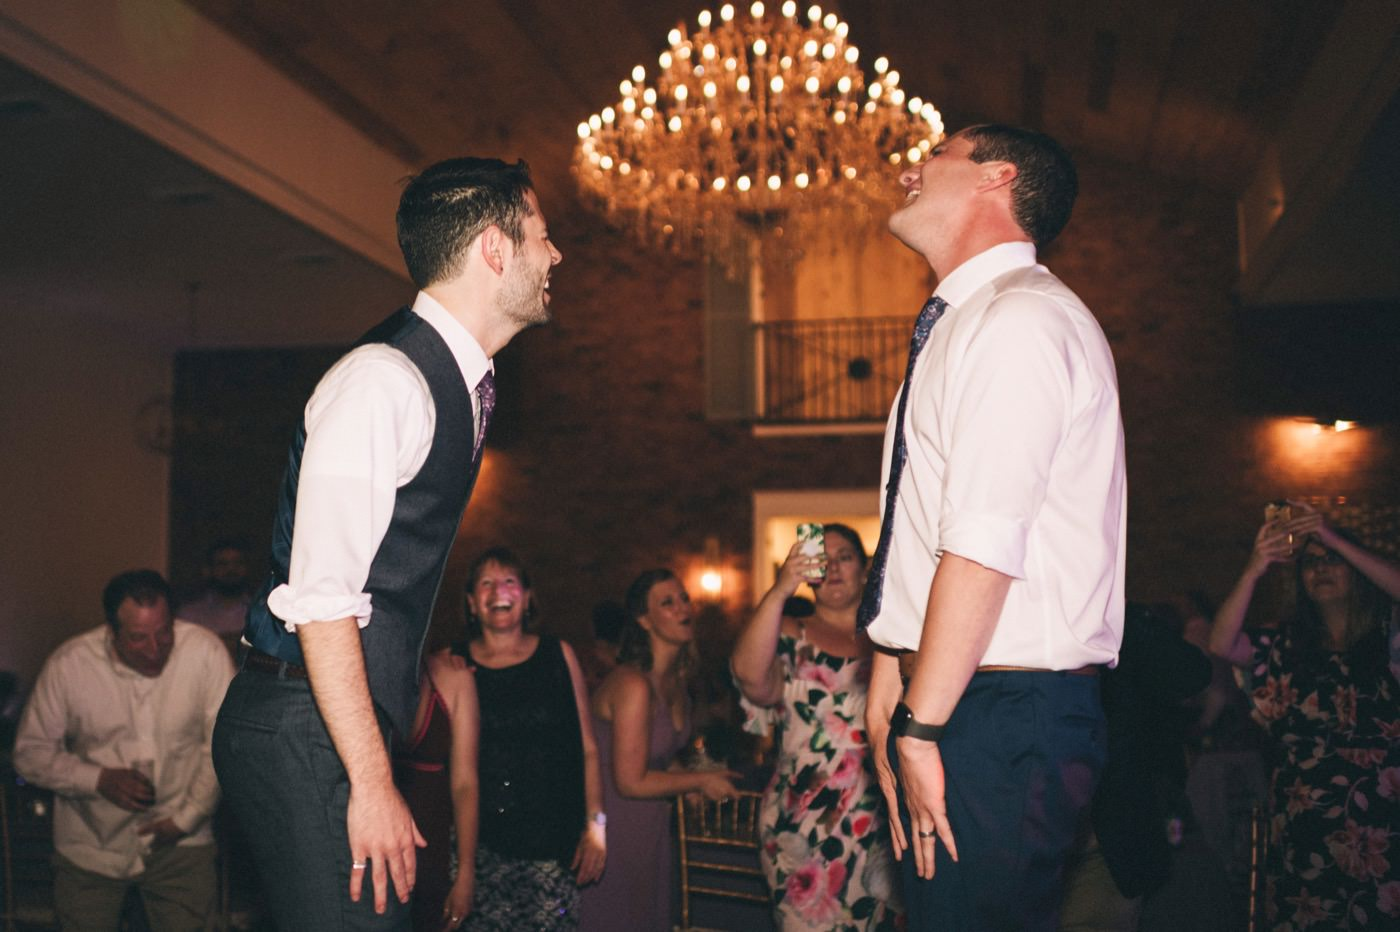 Will-Nate-Louisville-LGBTQ-Pride-Month-Kentucky-Wedding-By-Sarah-Katherine-Davis-Photograpy0076.JPG